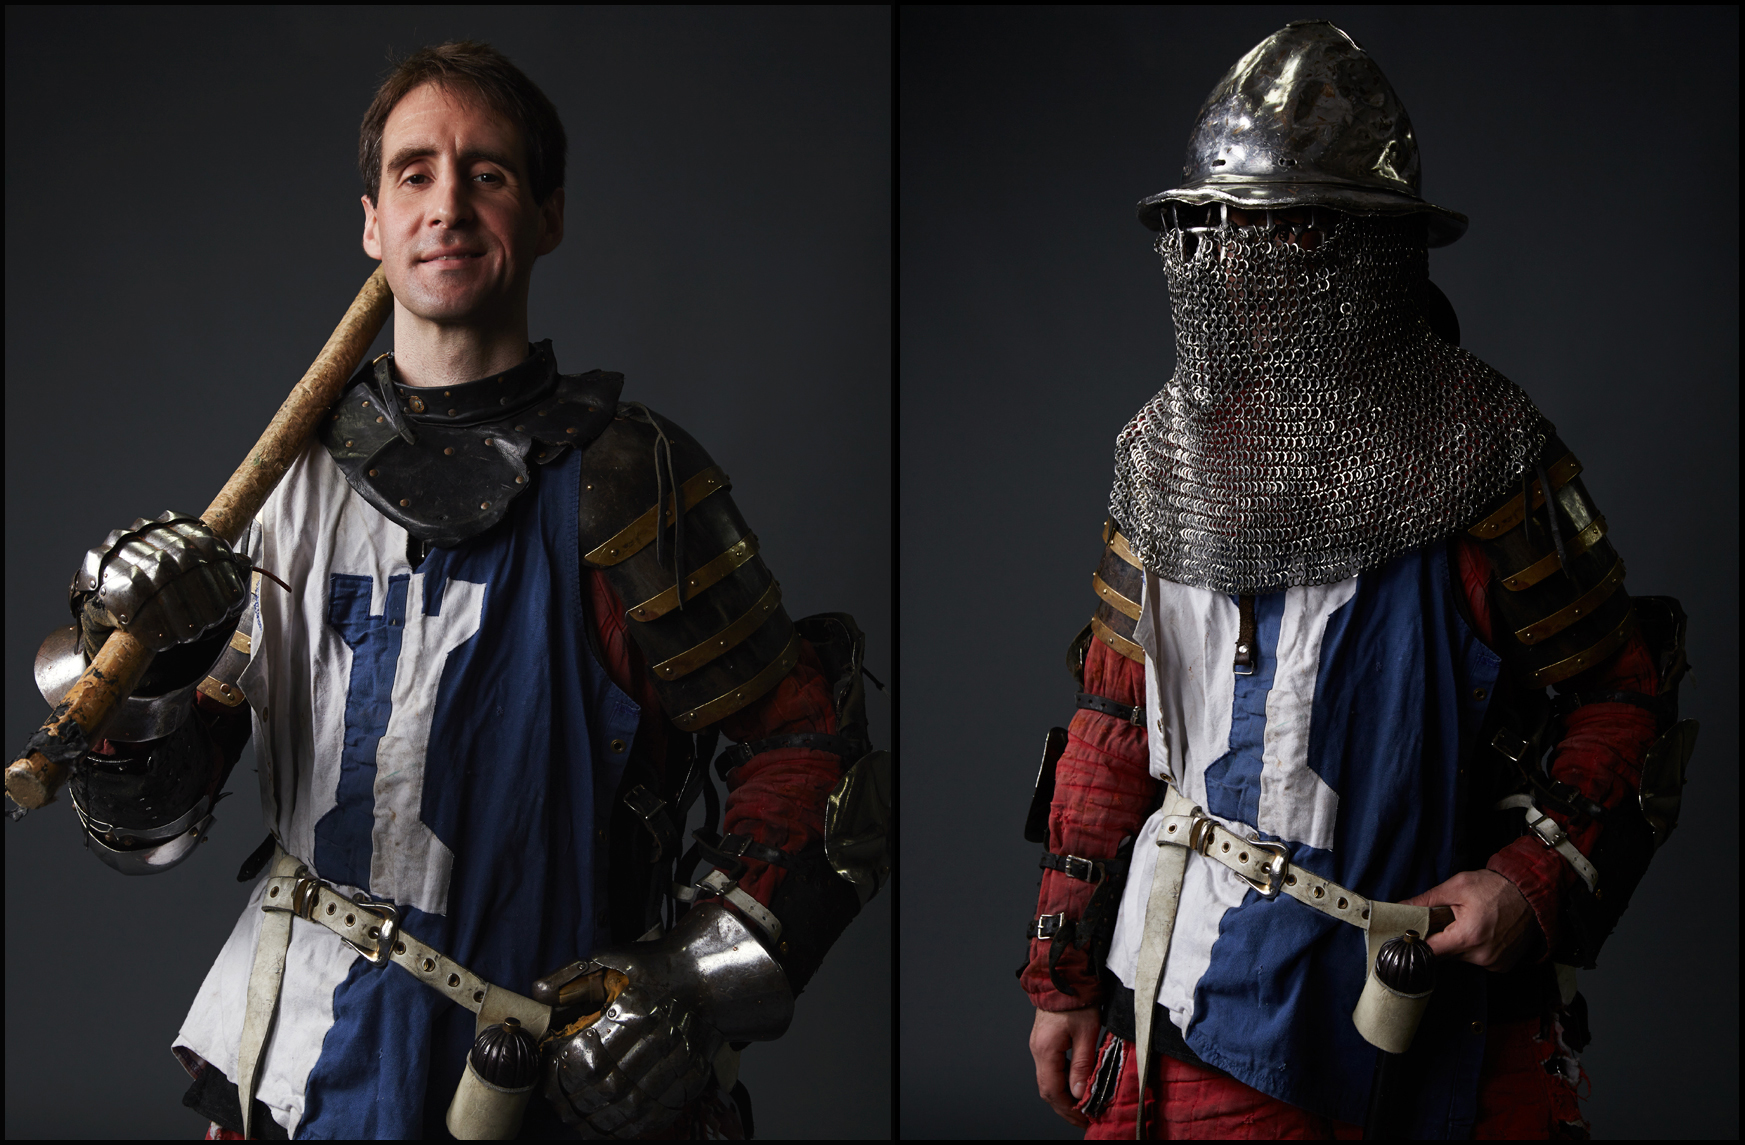 Armored Combat League Portraits NYC, Damion DiGrazia